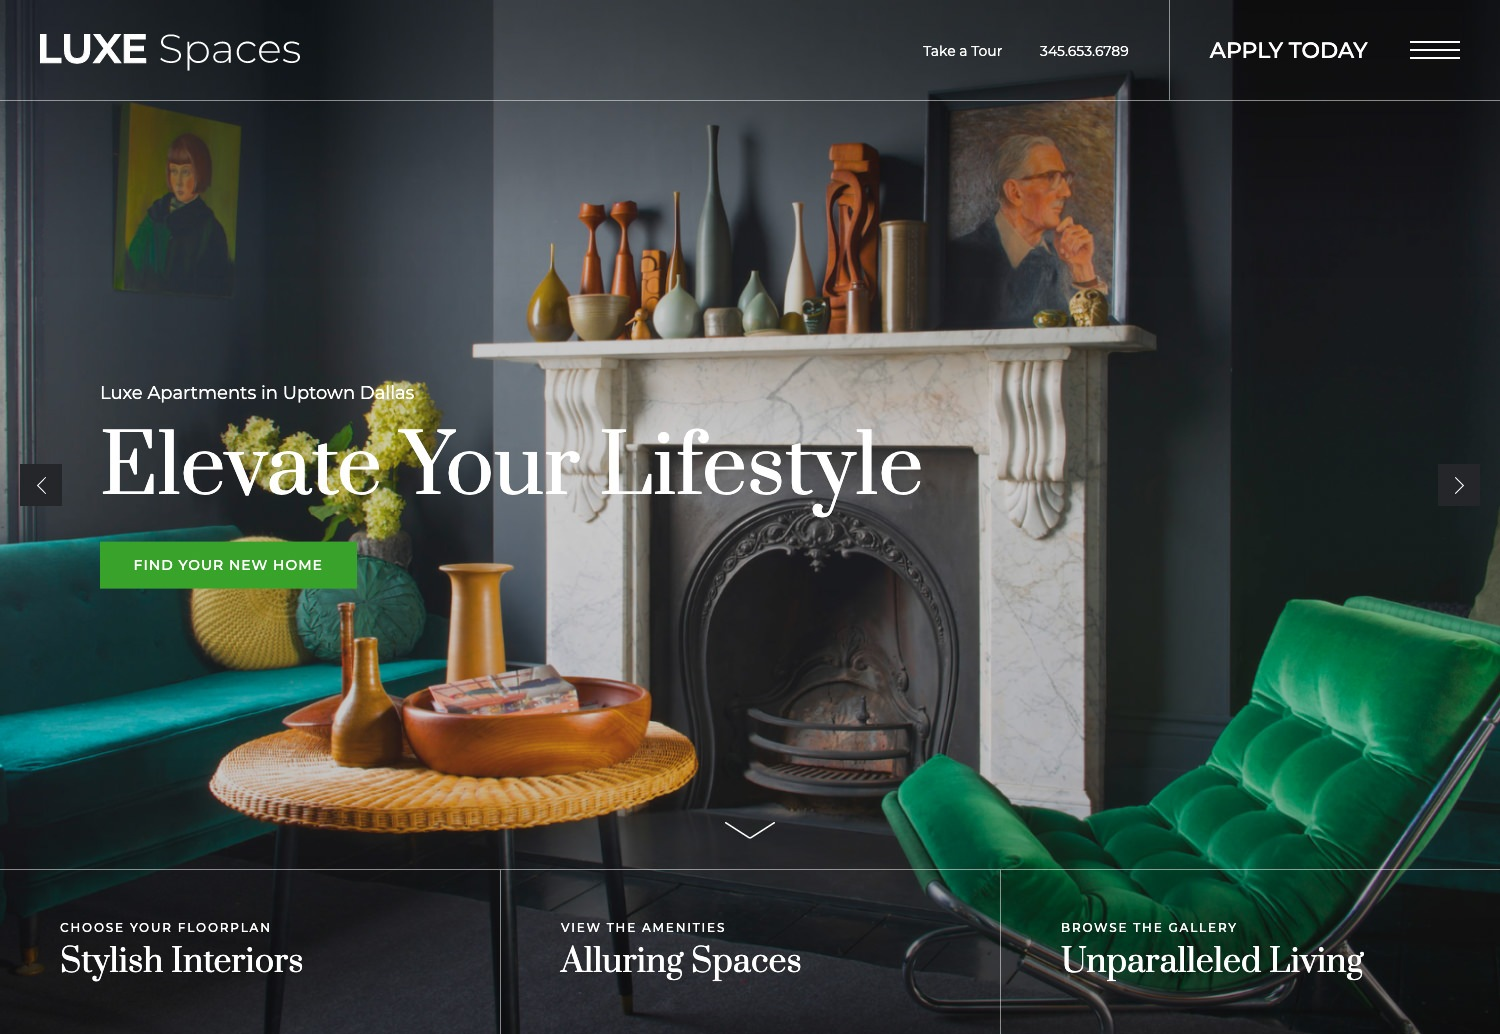 LUXE Spaces